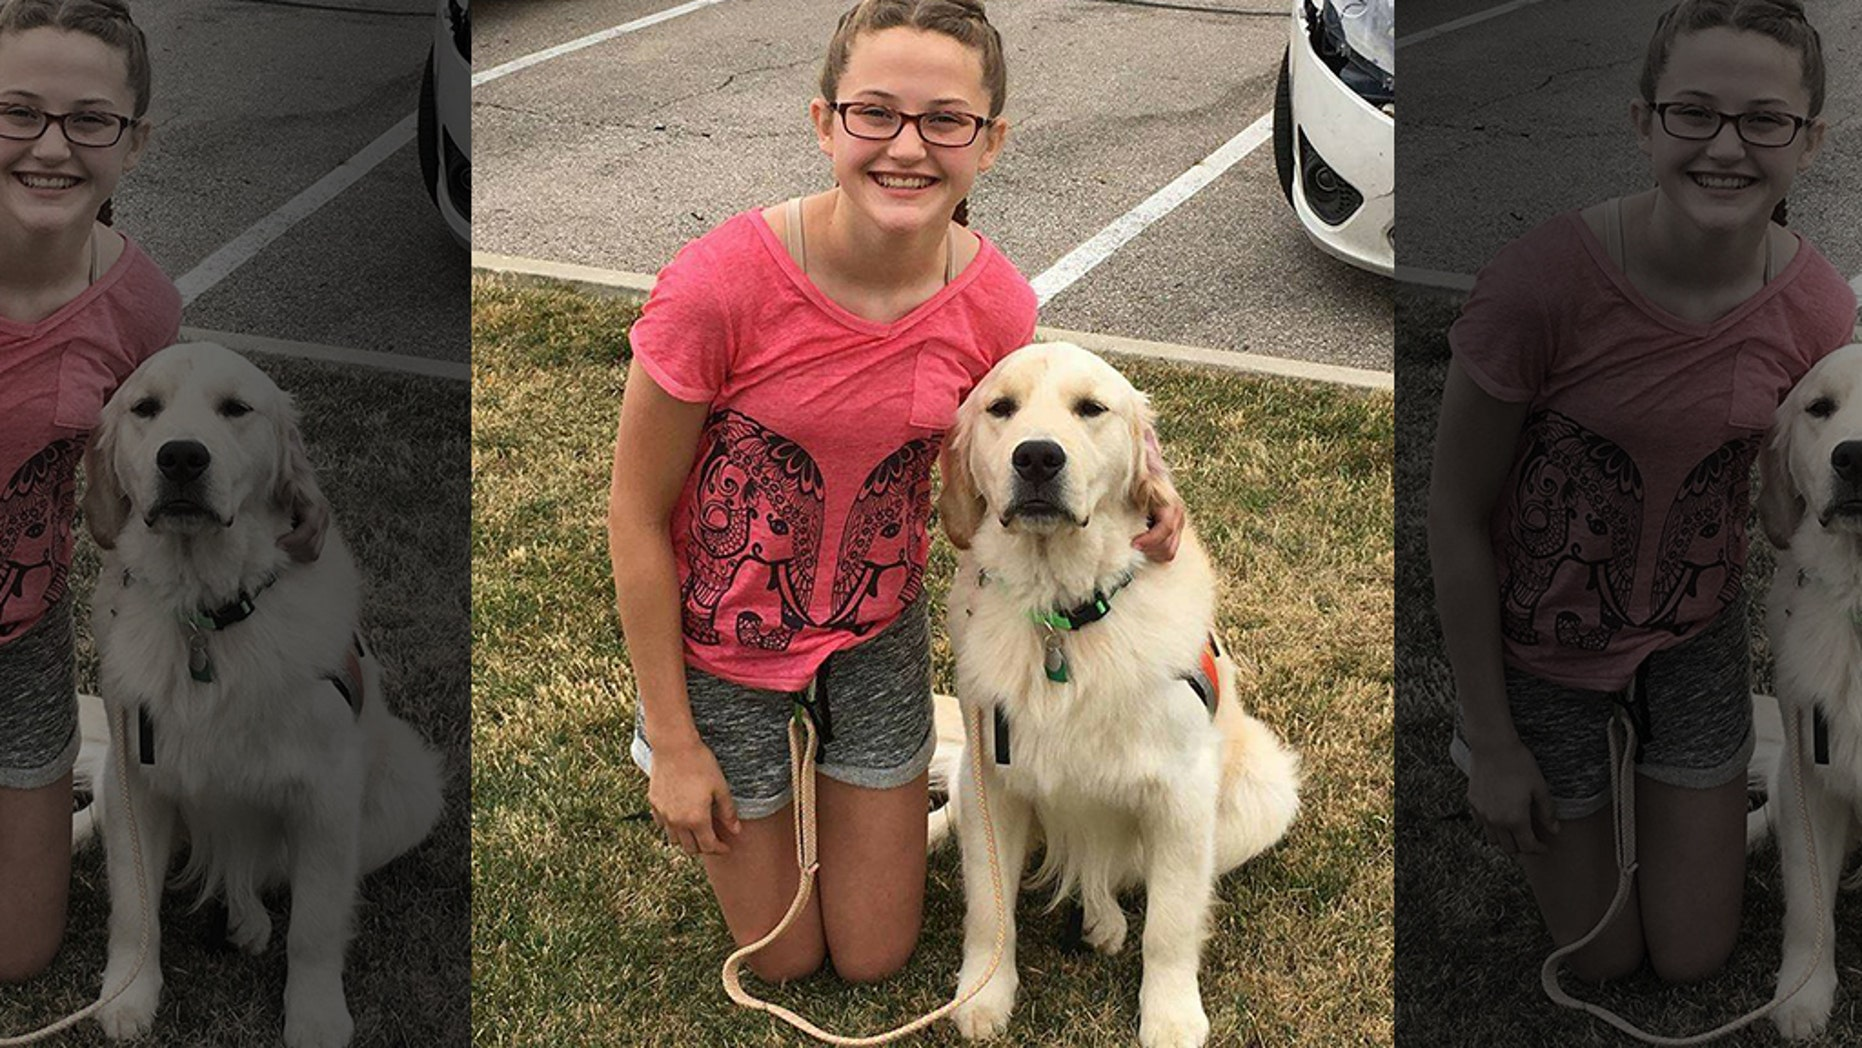 A diabetic alert dog trained to help prevent a 15-year-old girl from going into diabetic shock was apparently shot and killed in the family yard Sunday.